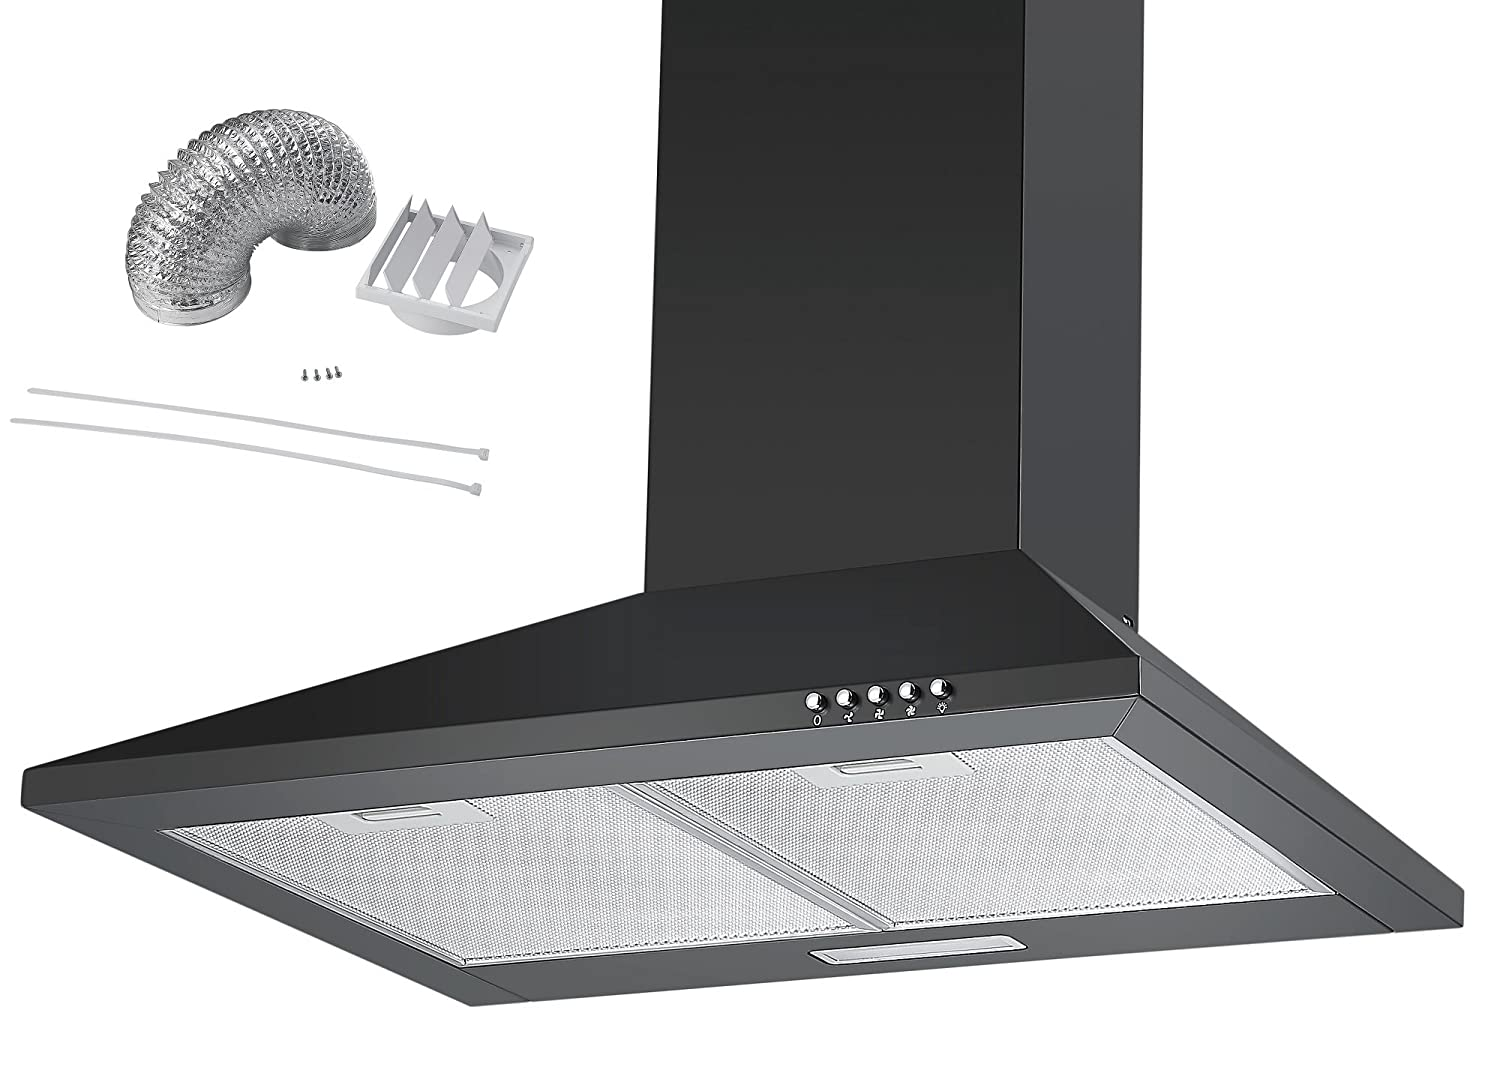 Cookology CH600BK DK1M150 | 60cm Chimney Cooker Hood, Kitchen Extractor Fan in Black & Ducting Kit